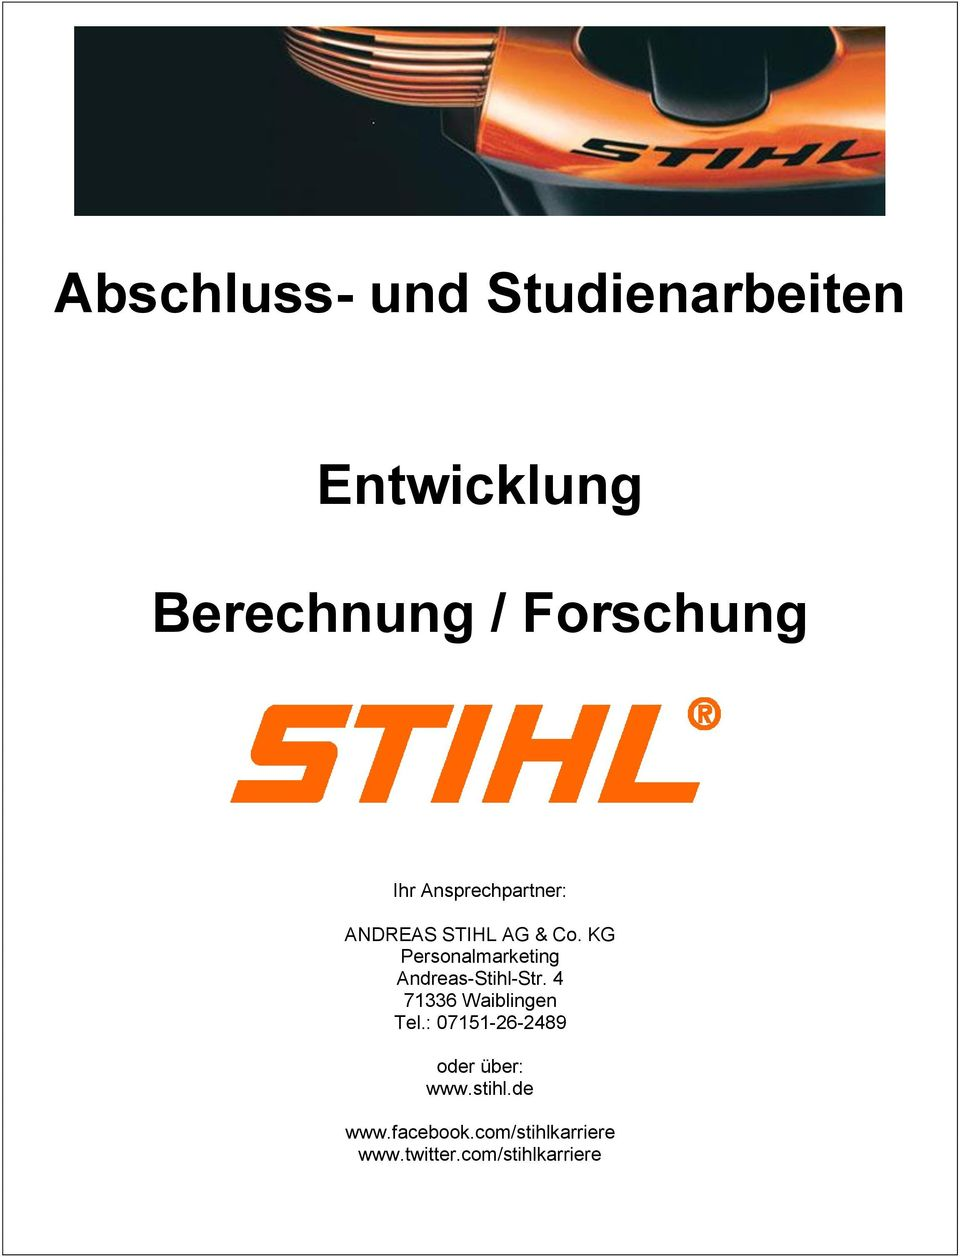 KG Personalmarketing Andreas-Stihl-Str.